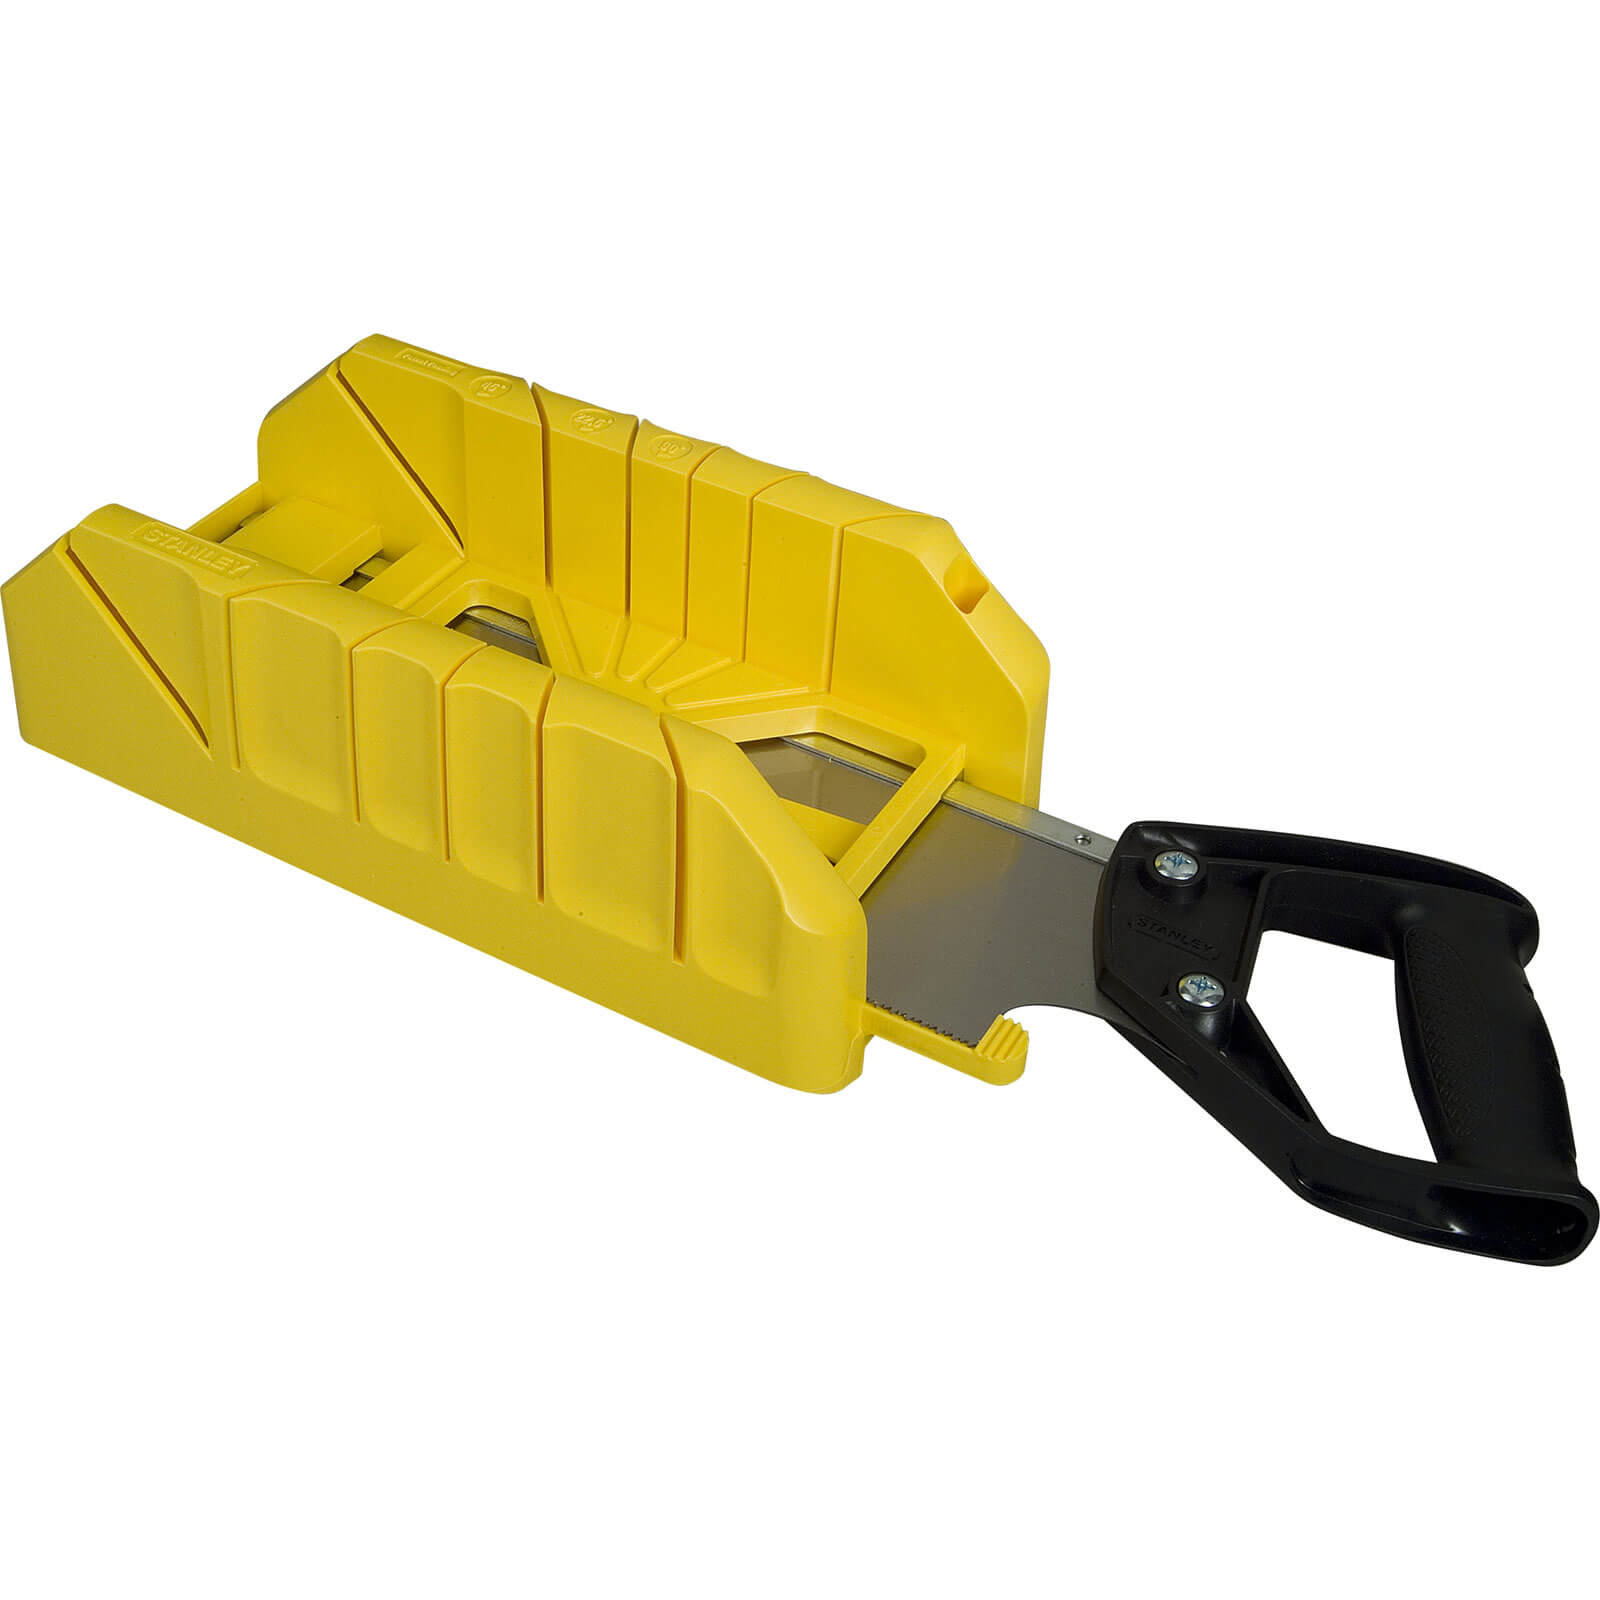 Stanley Mitre Box and Tenon Saw 300mm